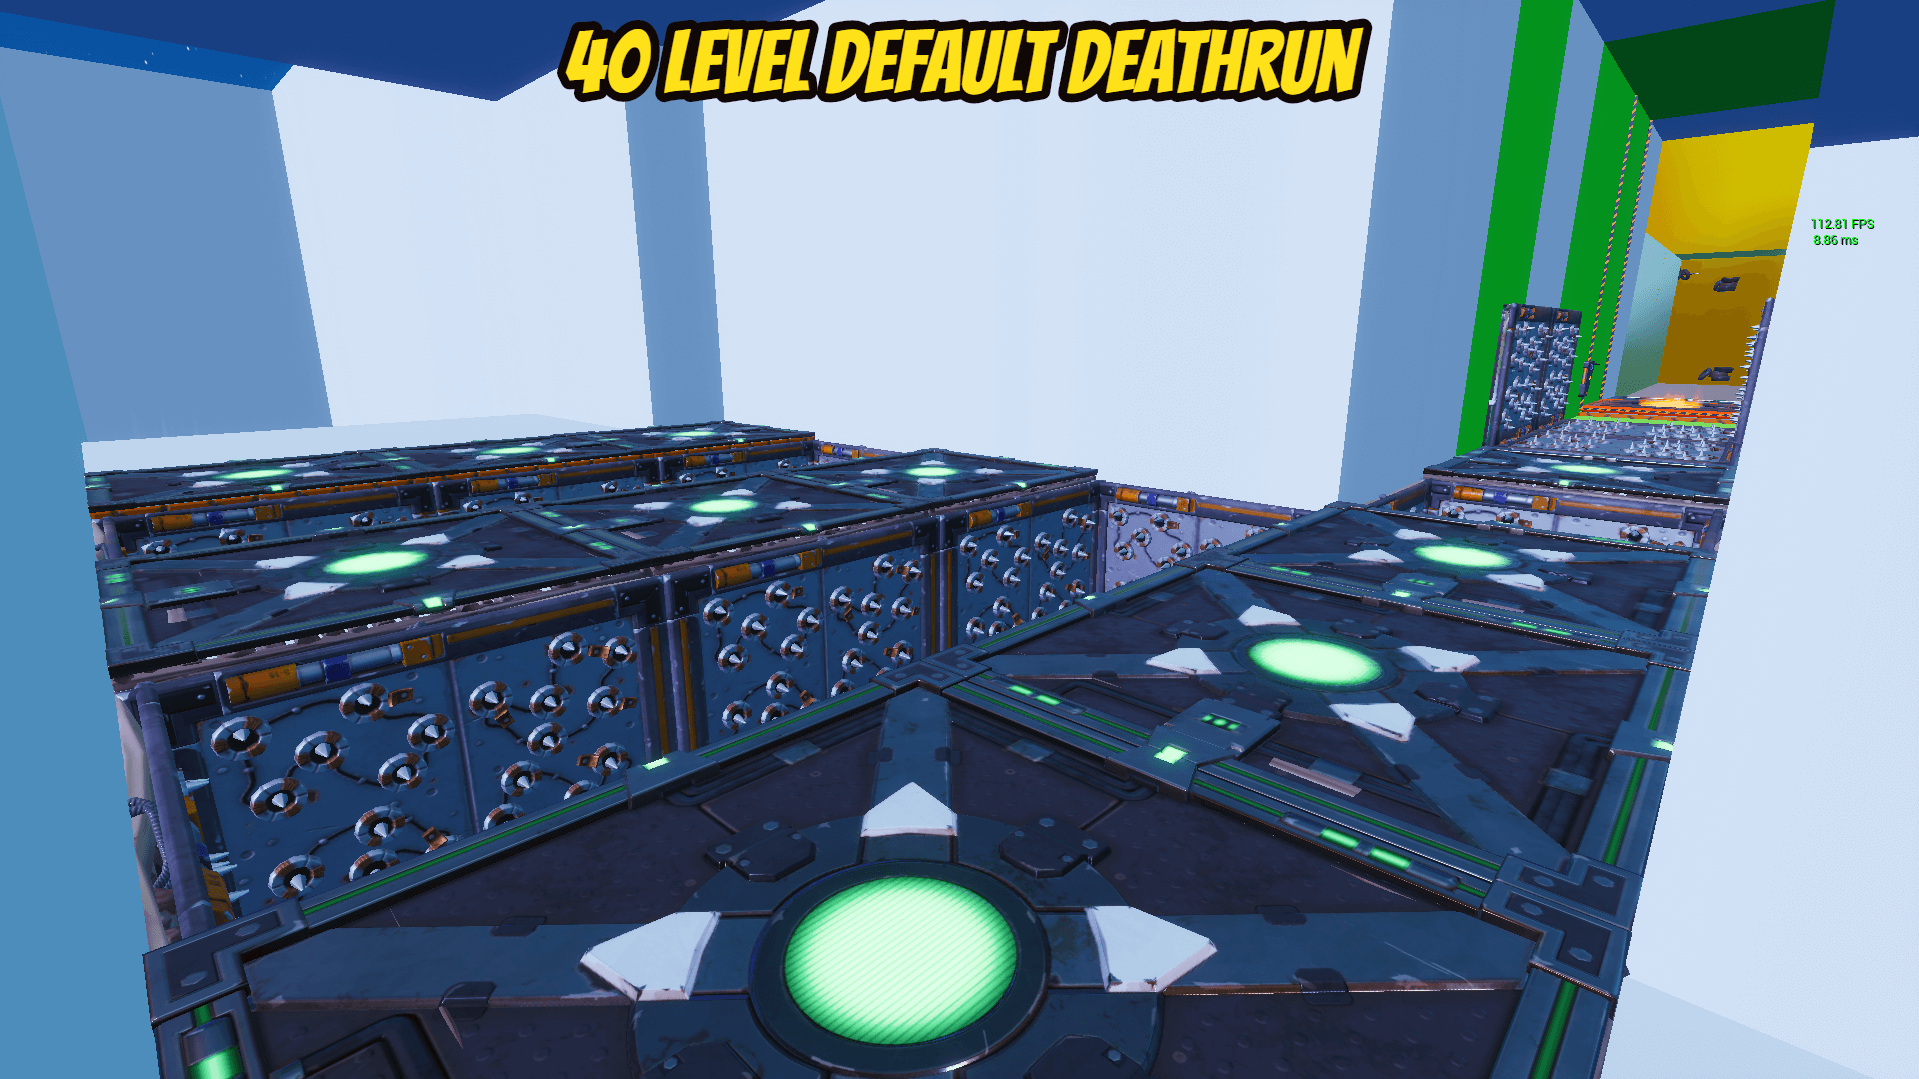 40 LEVEL DEFAULT DEATHRUN